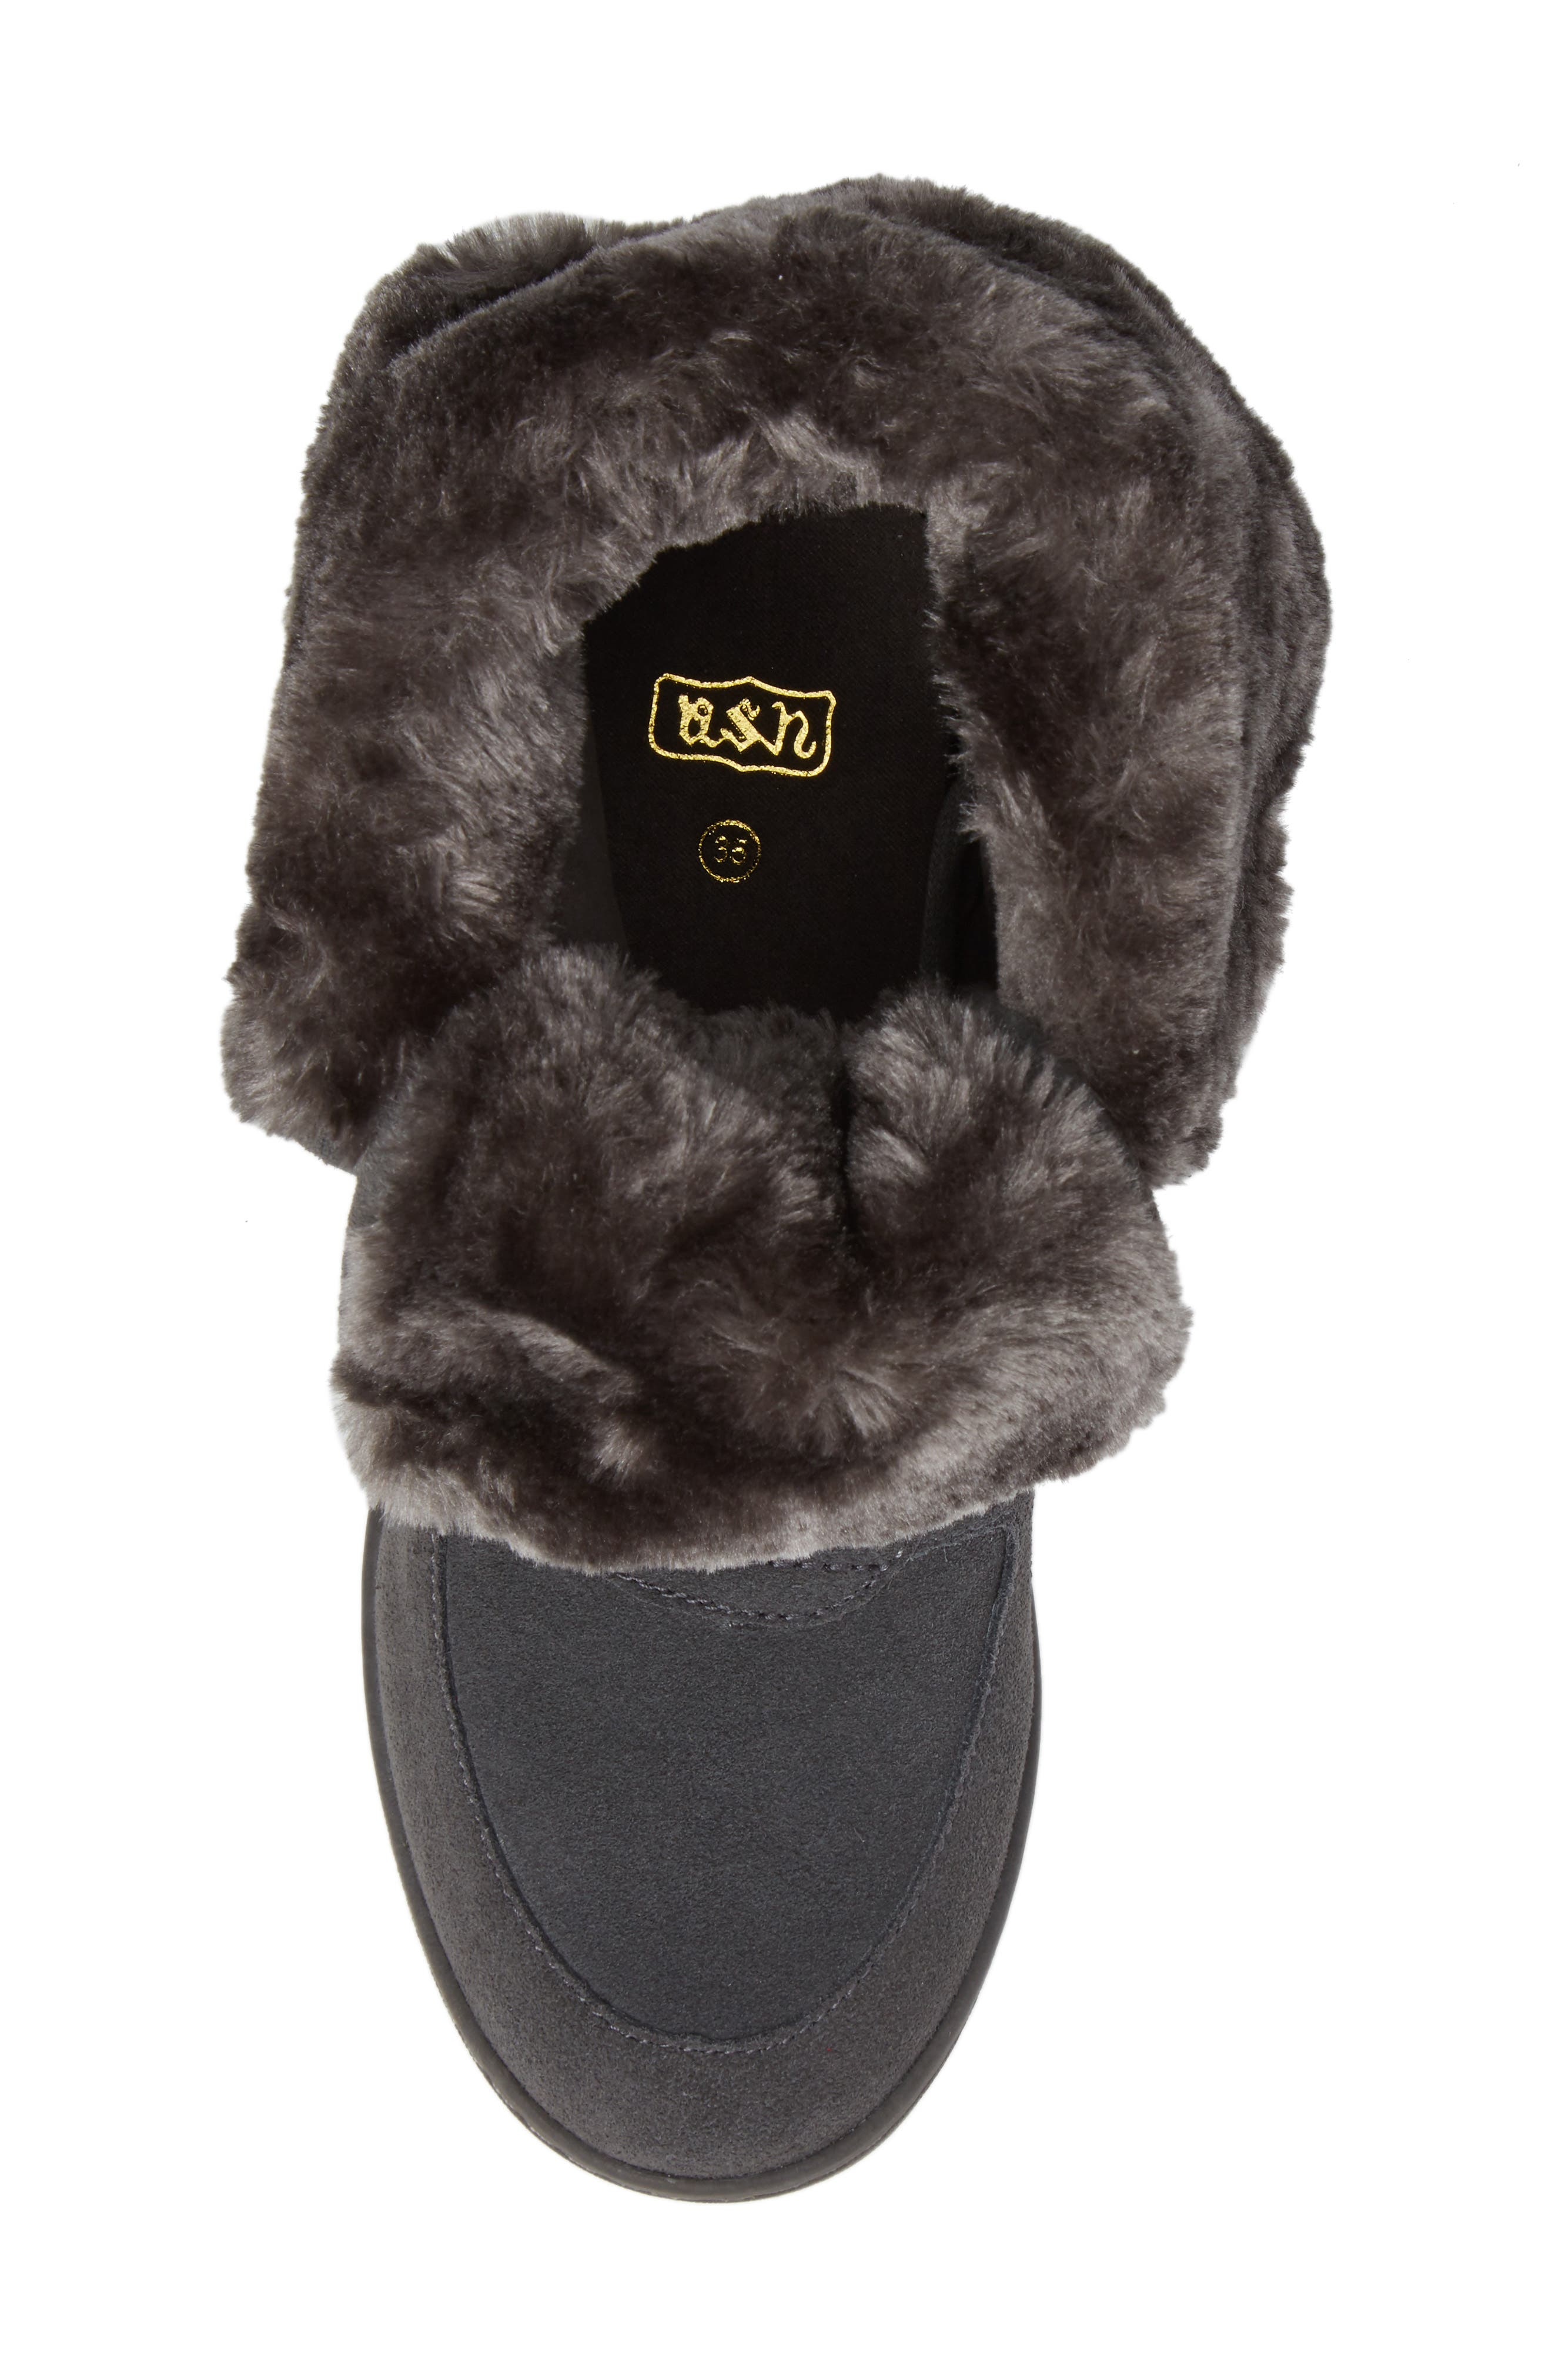 Boogie Beaver Faux Fur Cuffed Bootie,                             Alternate thumbnail 5, color,                             052